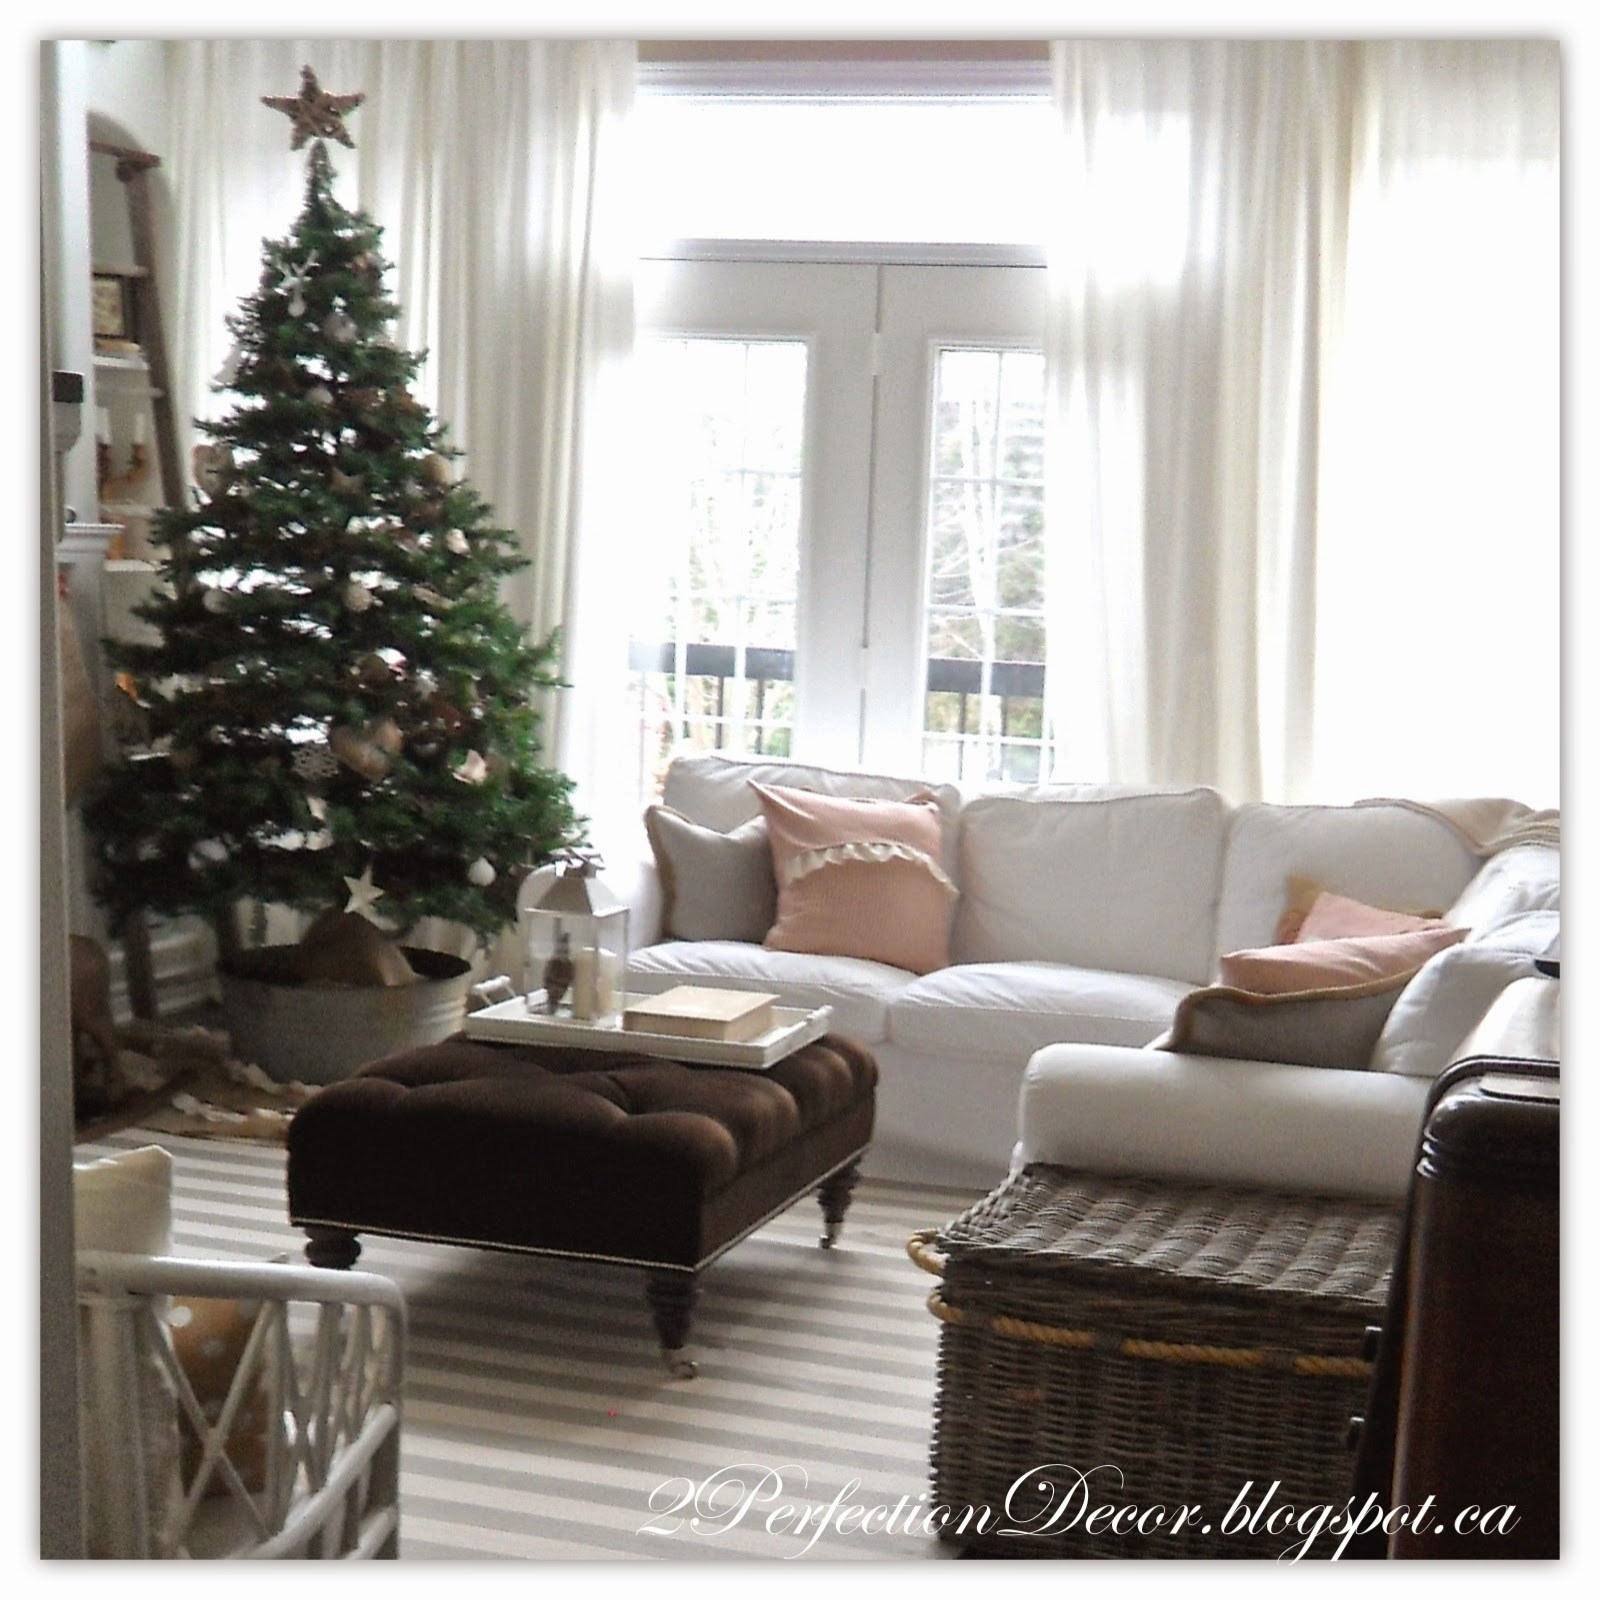 2Perfection Decor: Neutral Christmas Decor in our Family Room